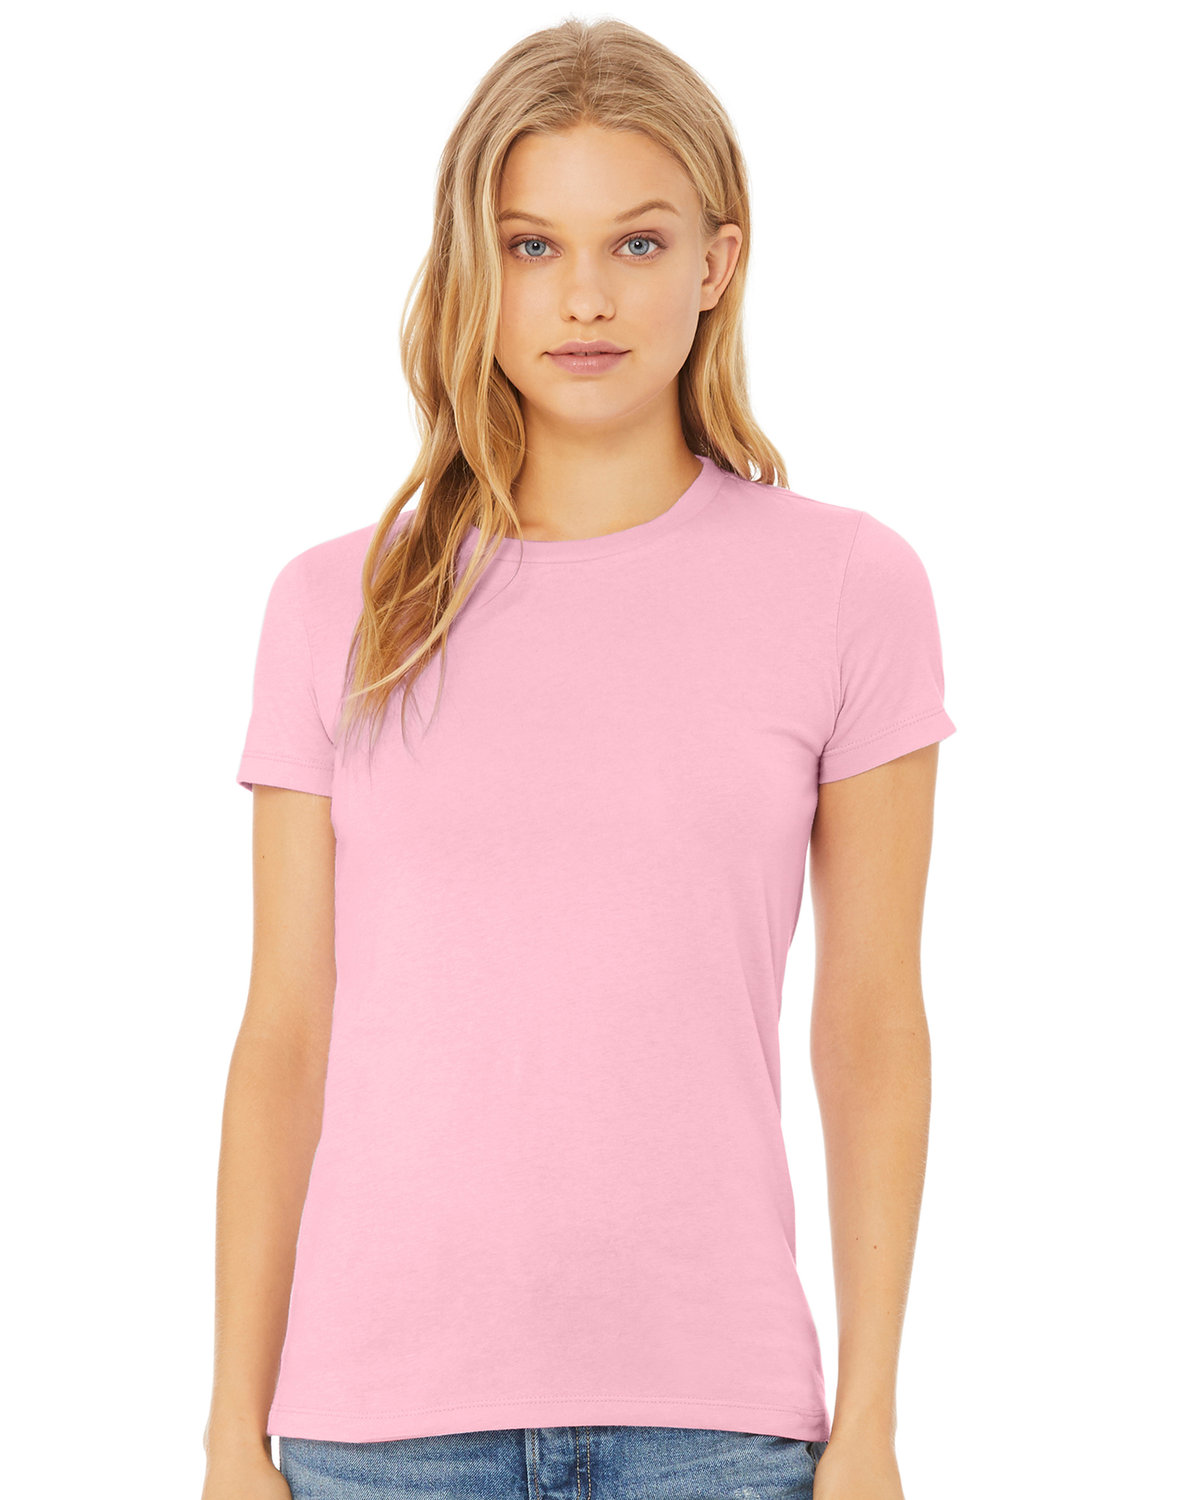 Bella + Canvas Ladies' Relaxed Triblend T-Shirt PINK TRIBLEND